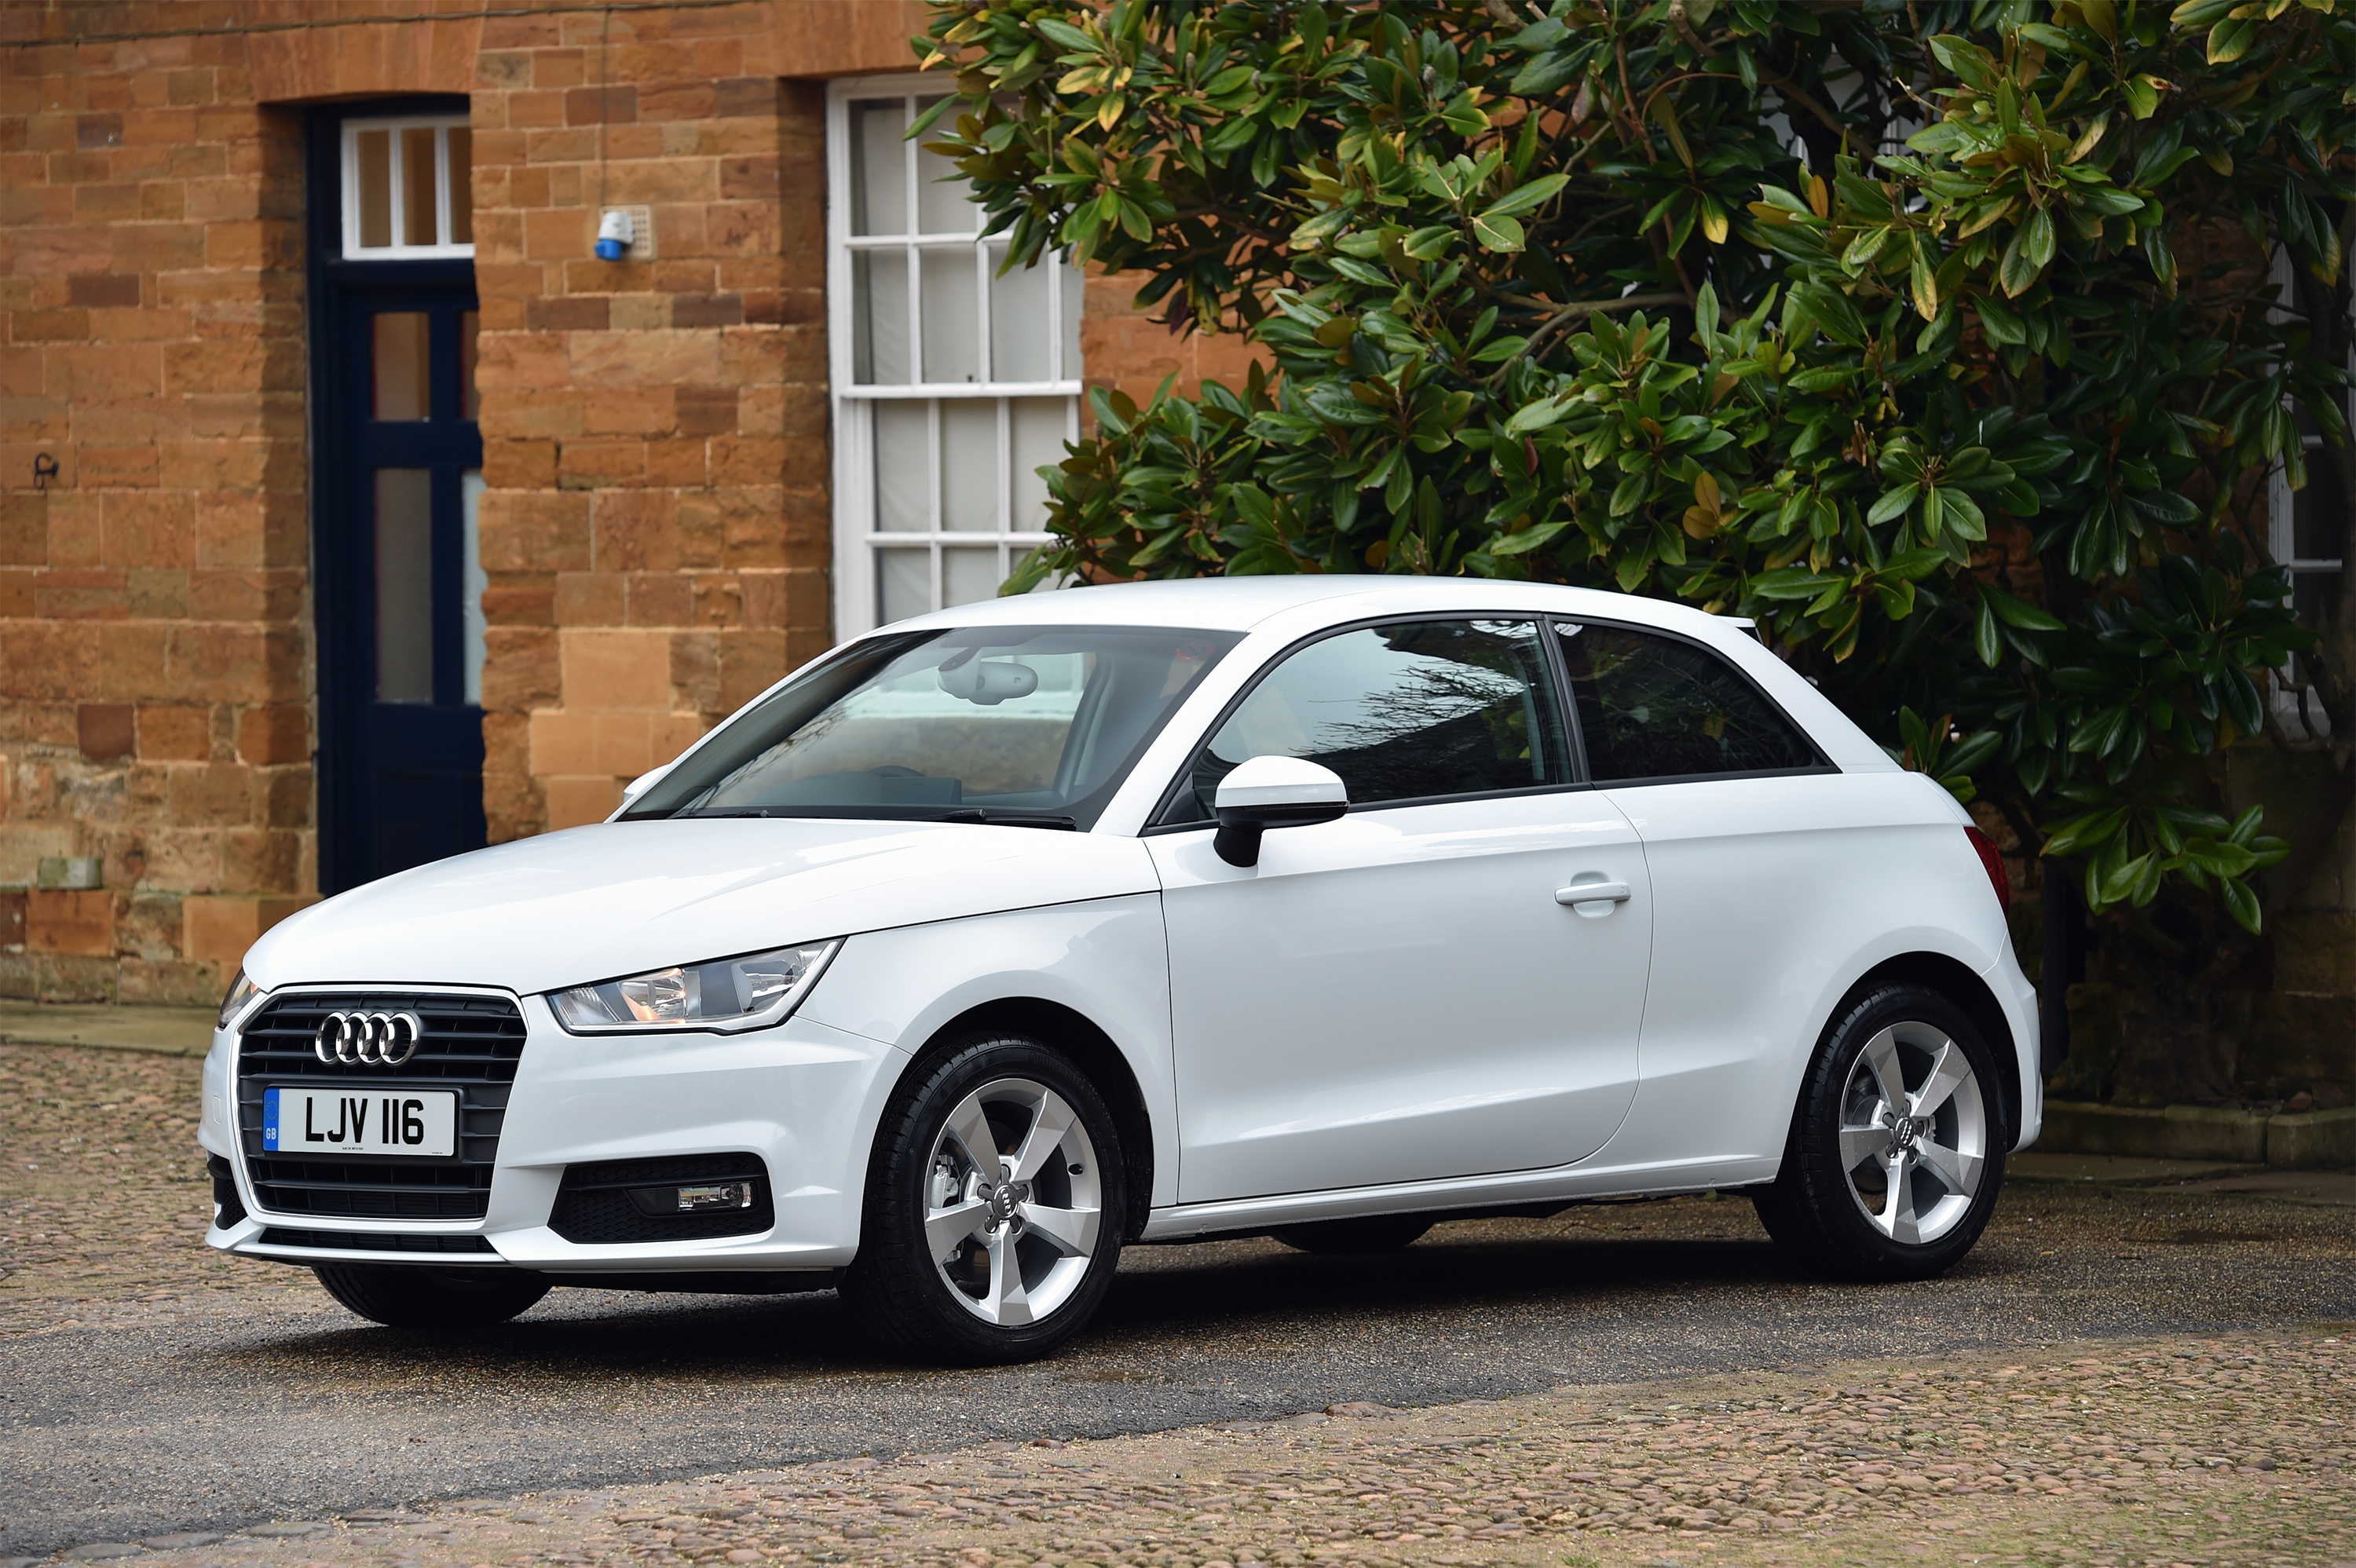 first three cylinder petrol engine for audi a1 same car different wheels. Black Bedroom Furniture Sets. Home Design Ideas